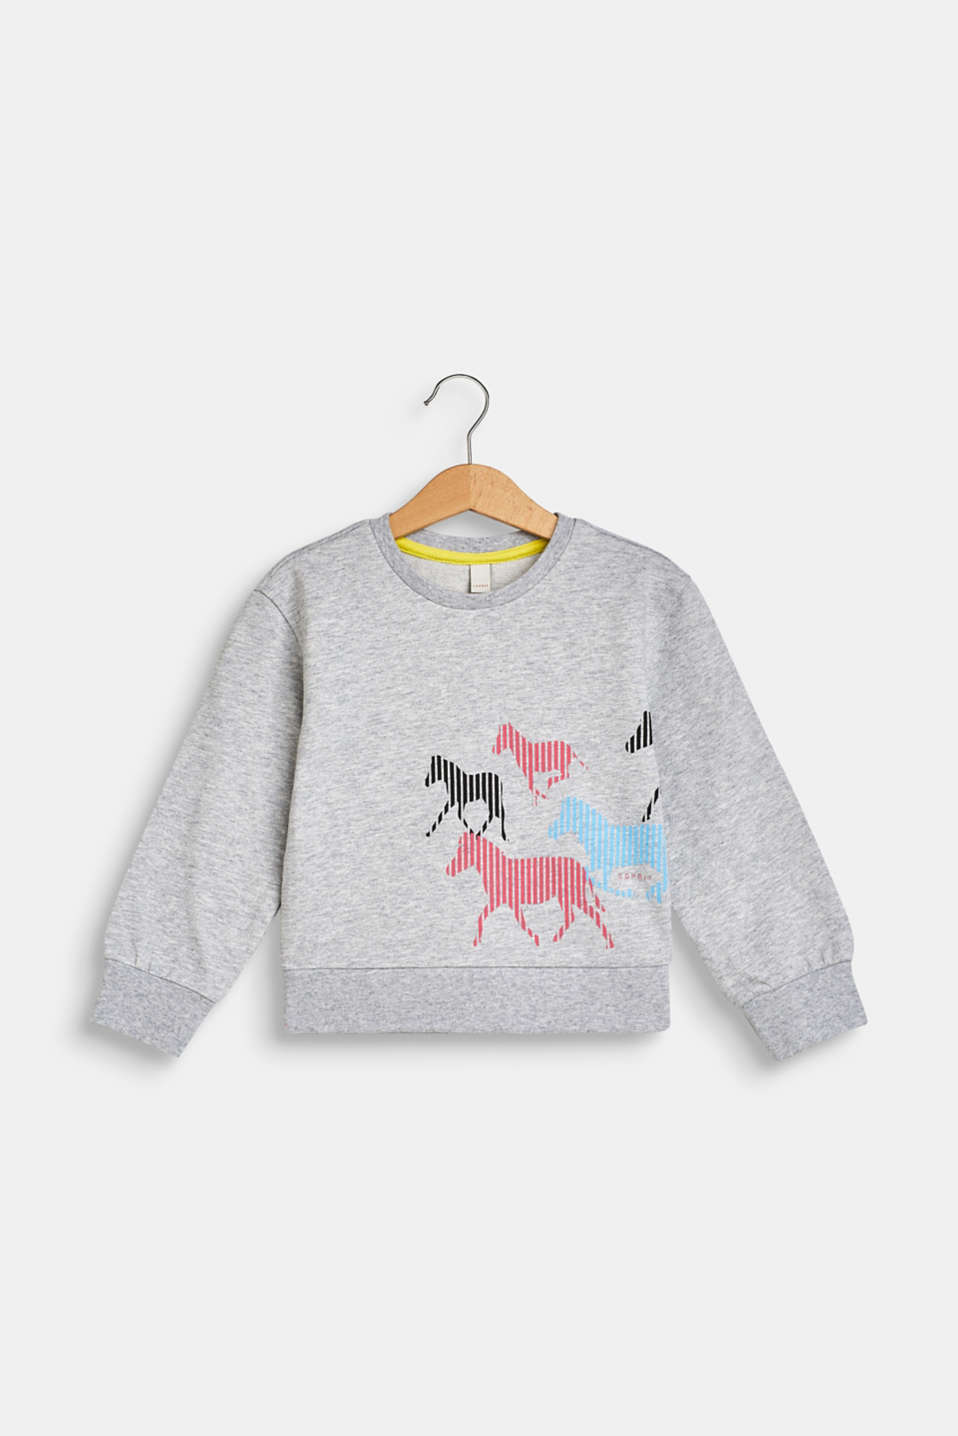 Esprit - Sweat-shirt à imprimé cheval, 100 % coton